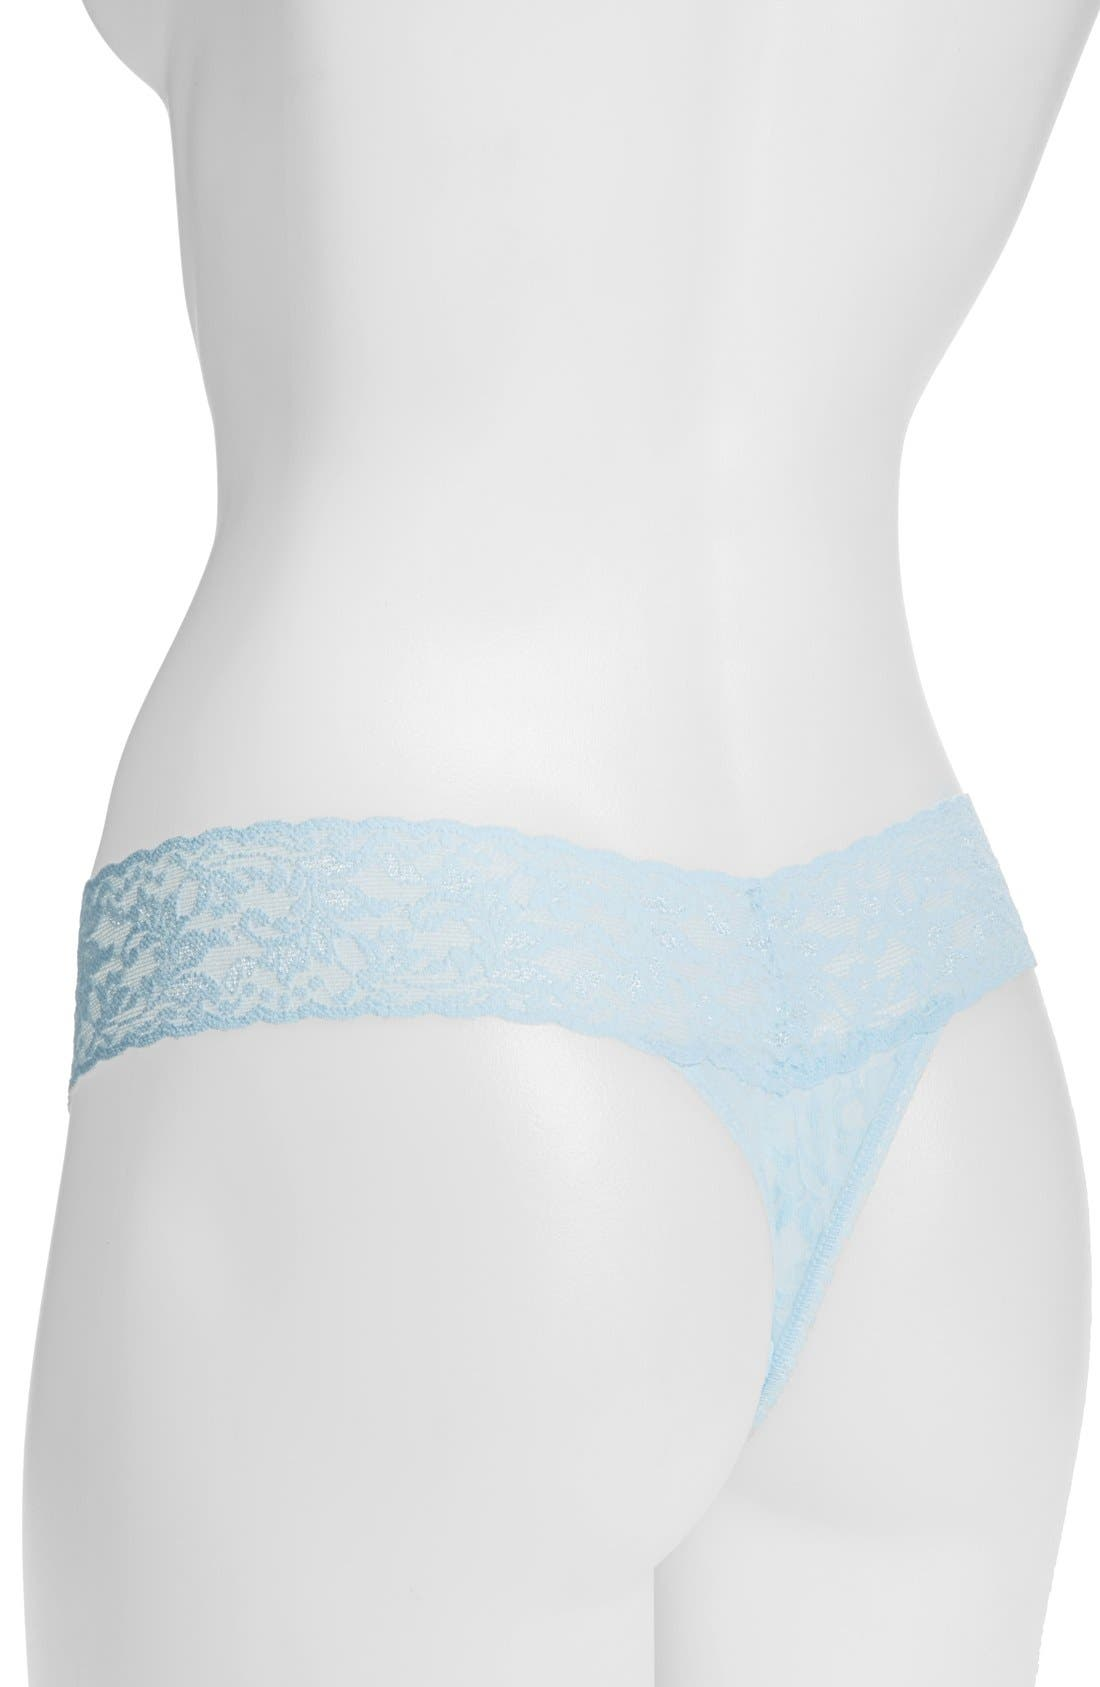 'I Do' Swarovski Crystal Low Rise Thong,                             Alternate thumbnail 3, color,                             POWDER BLUE